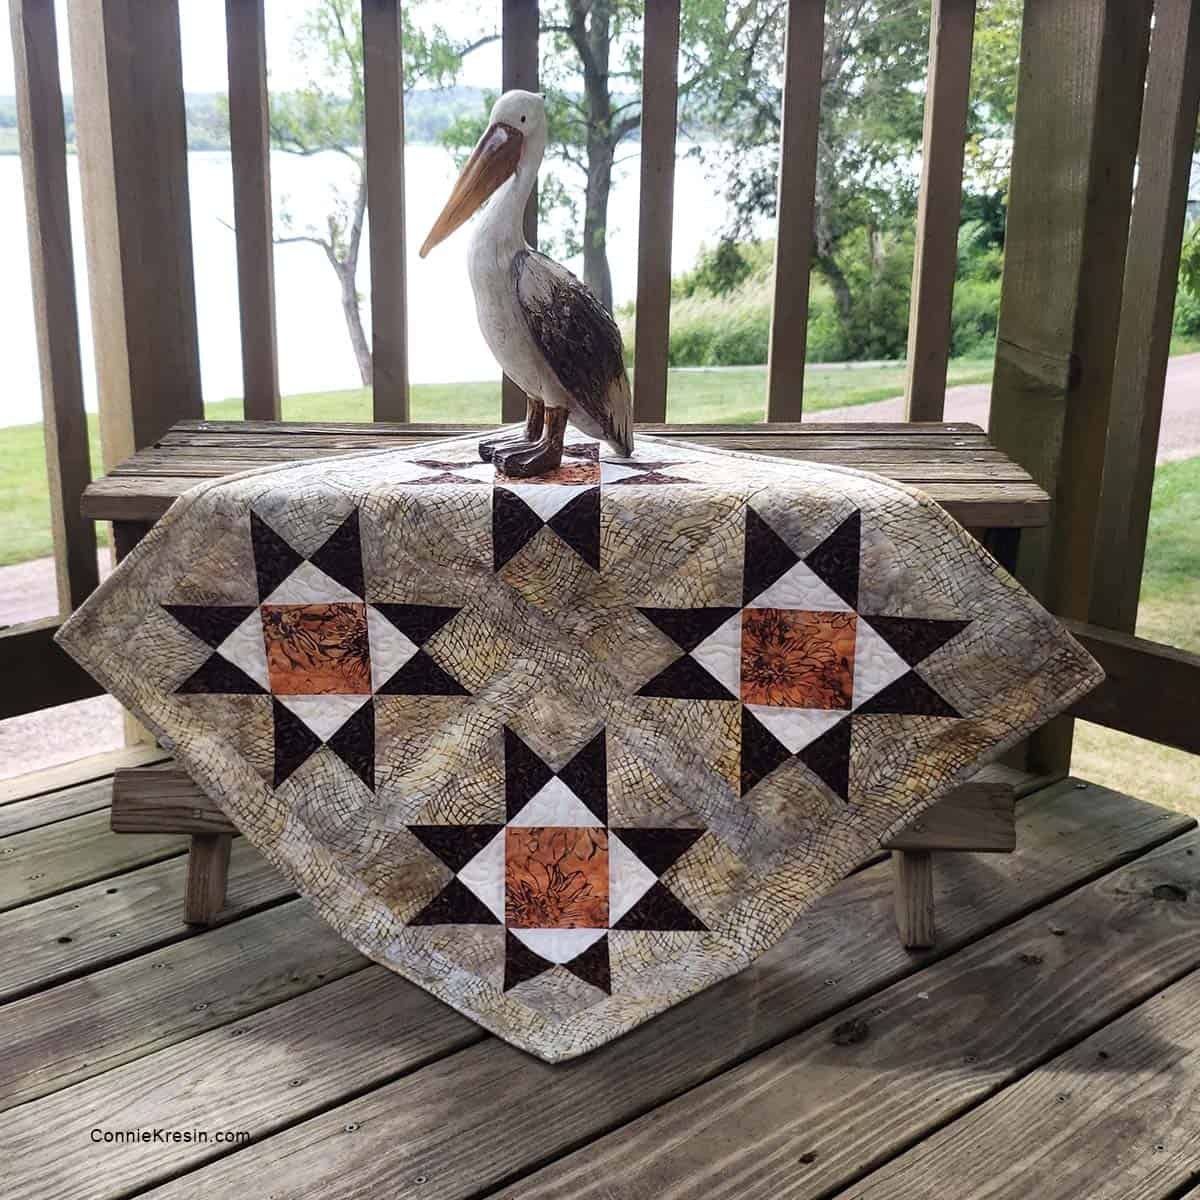 Diamond Stars quilt tutorial with pelican on a bench by the river